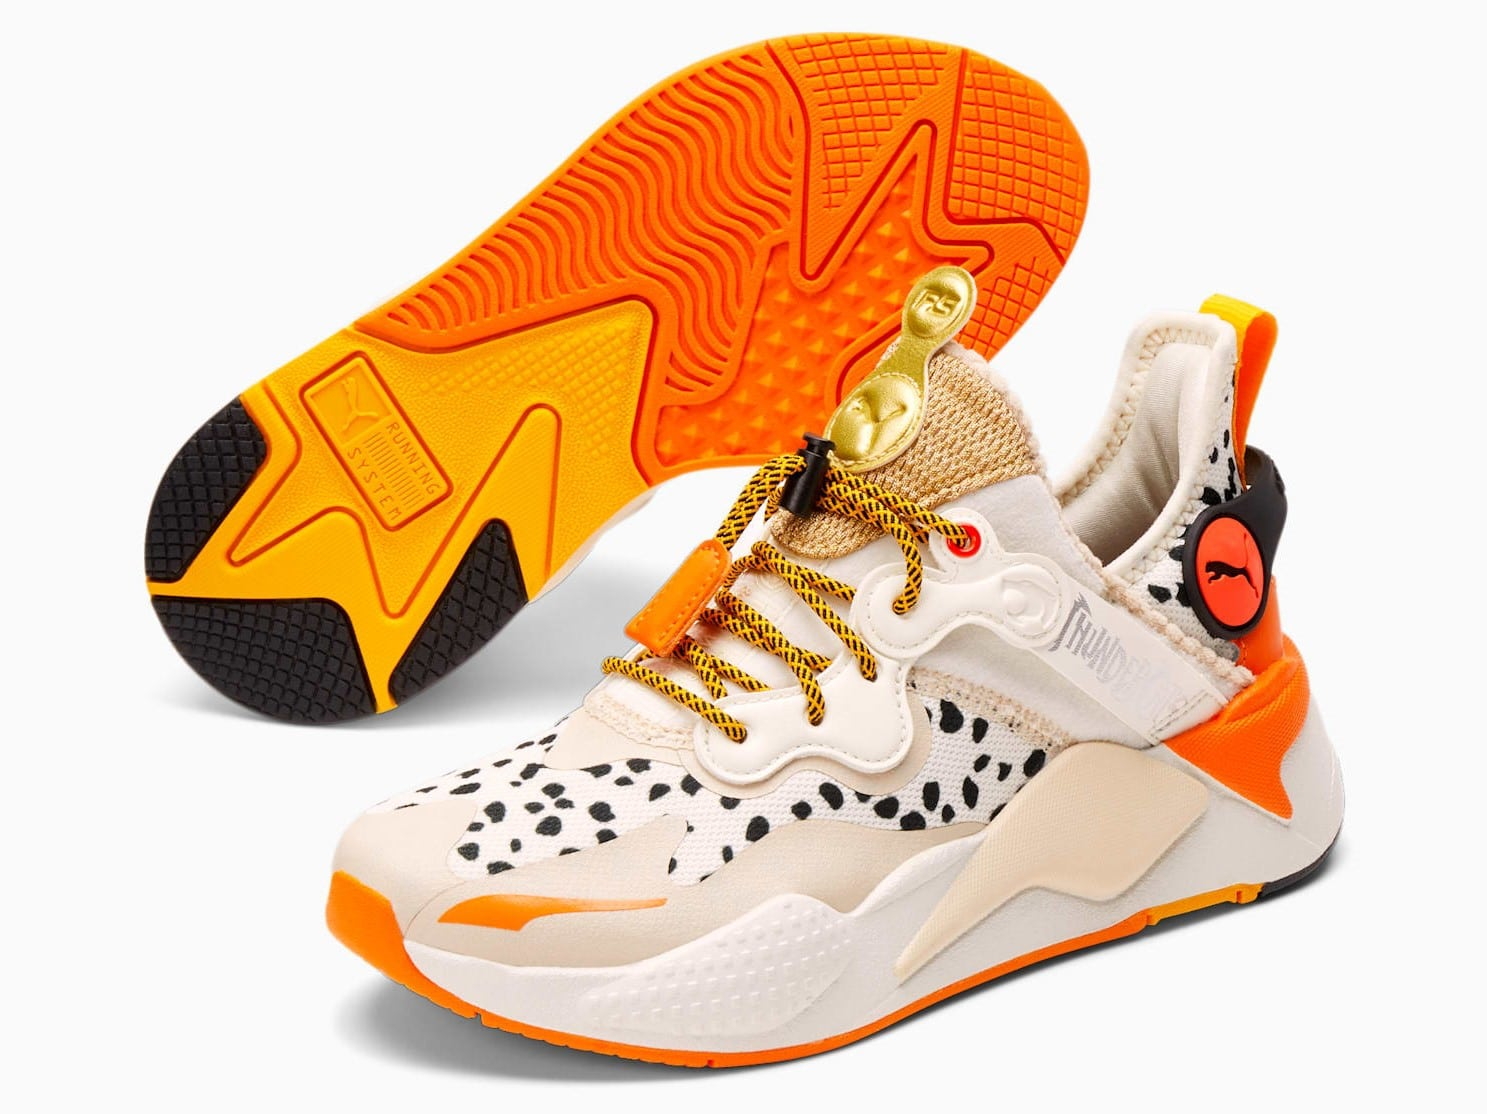 Puma x ThunderCats collection is now available 14